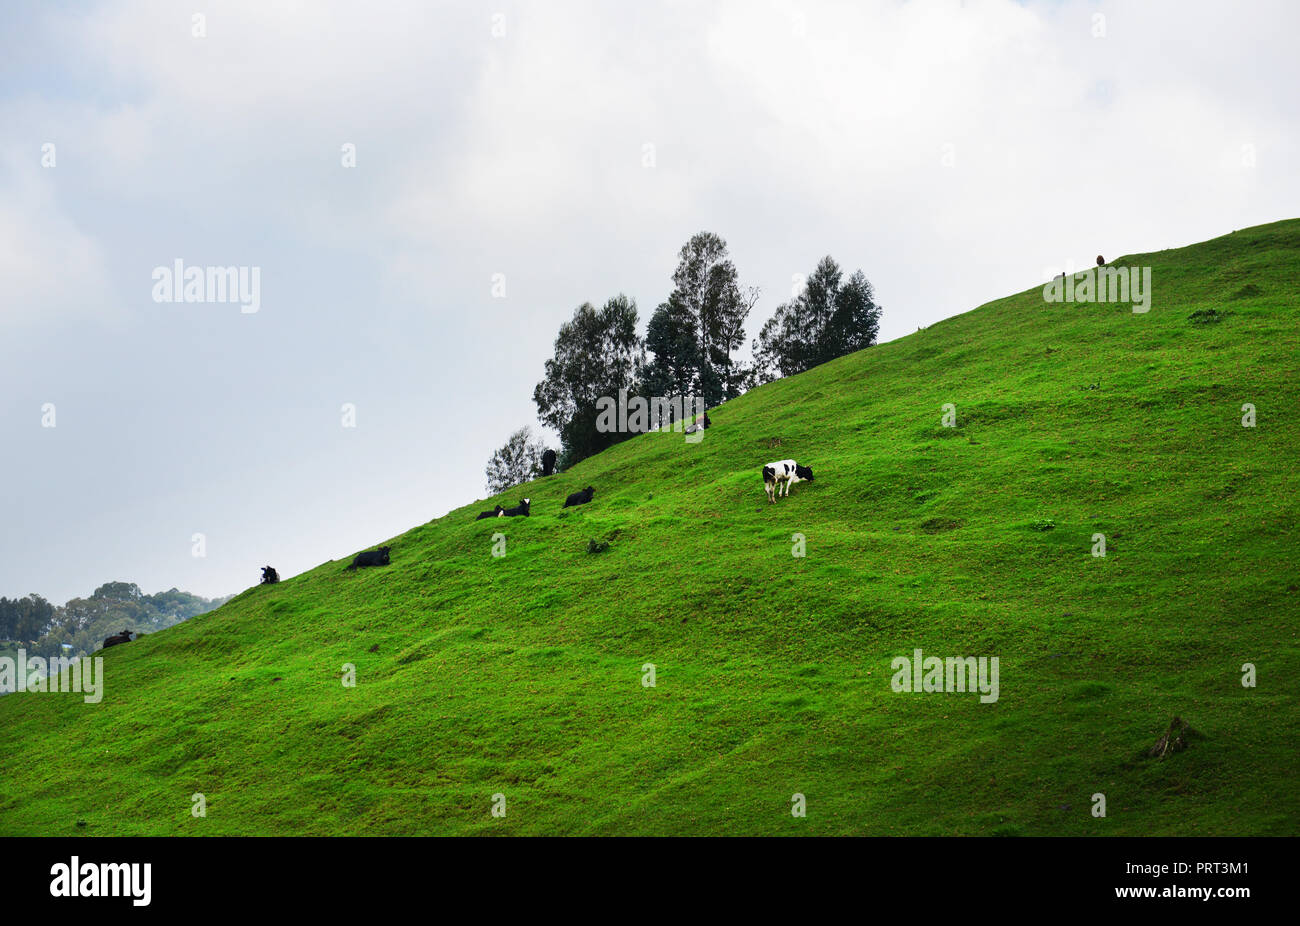 Rural landscapes in western Rwanda. - Stock Image